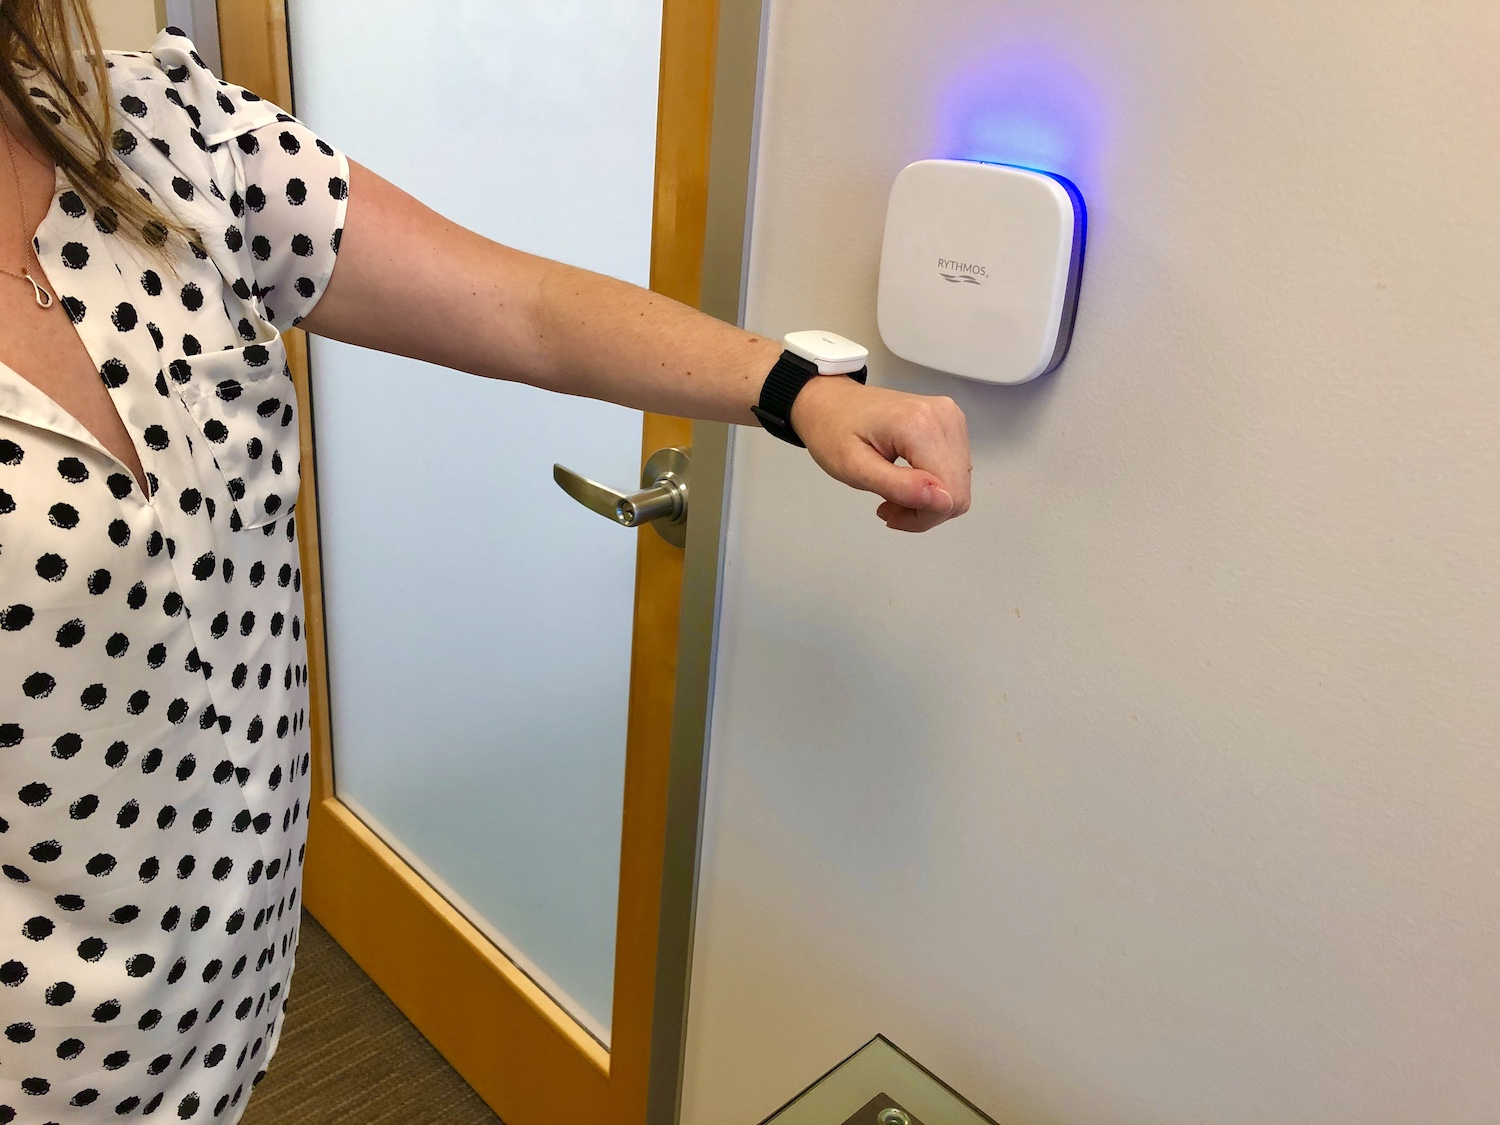 Rythmos wearable worn on woman's wrist being used to unlock a door with Rythmos access control reader